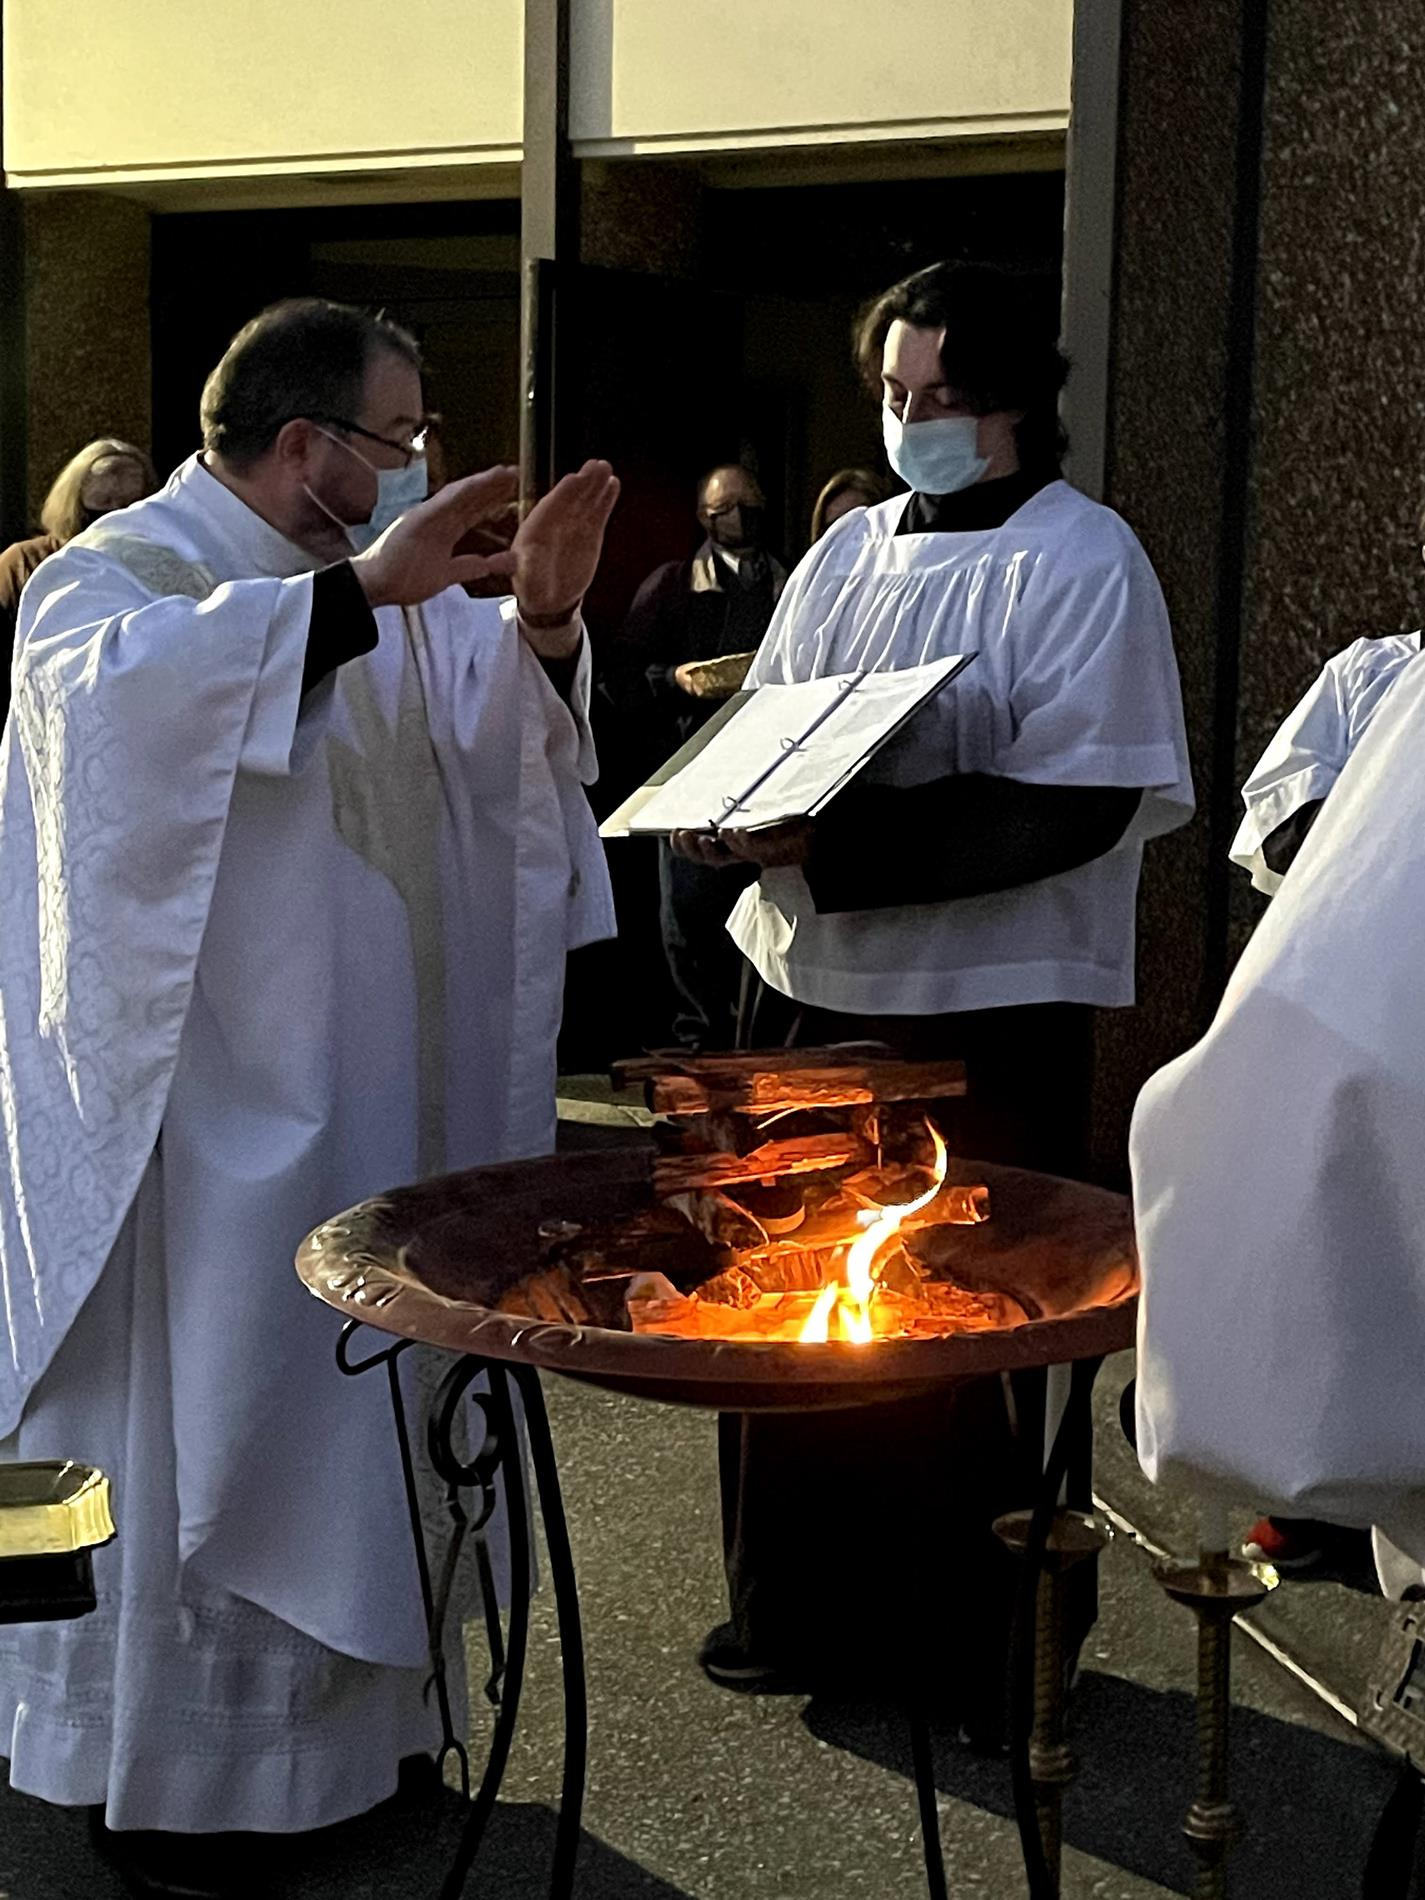 Blessing of the fire